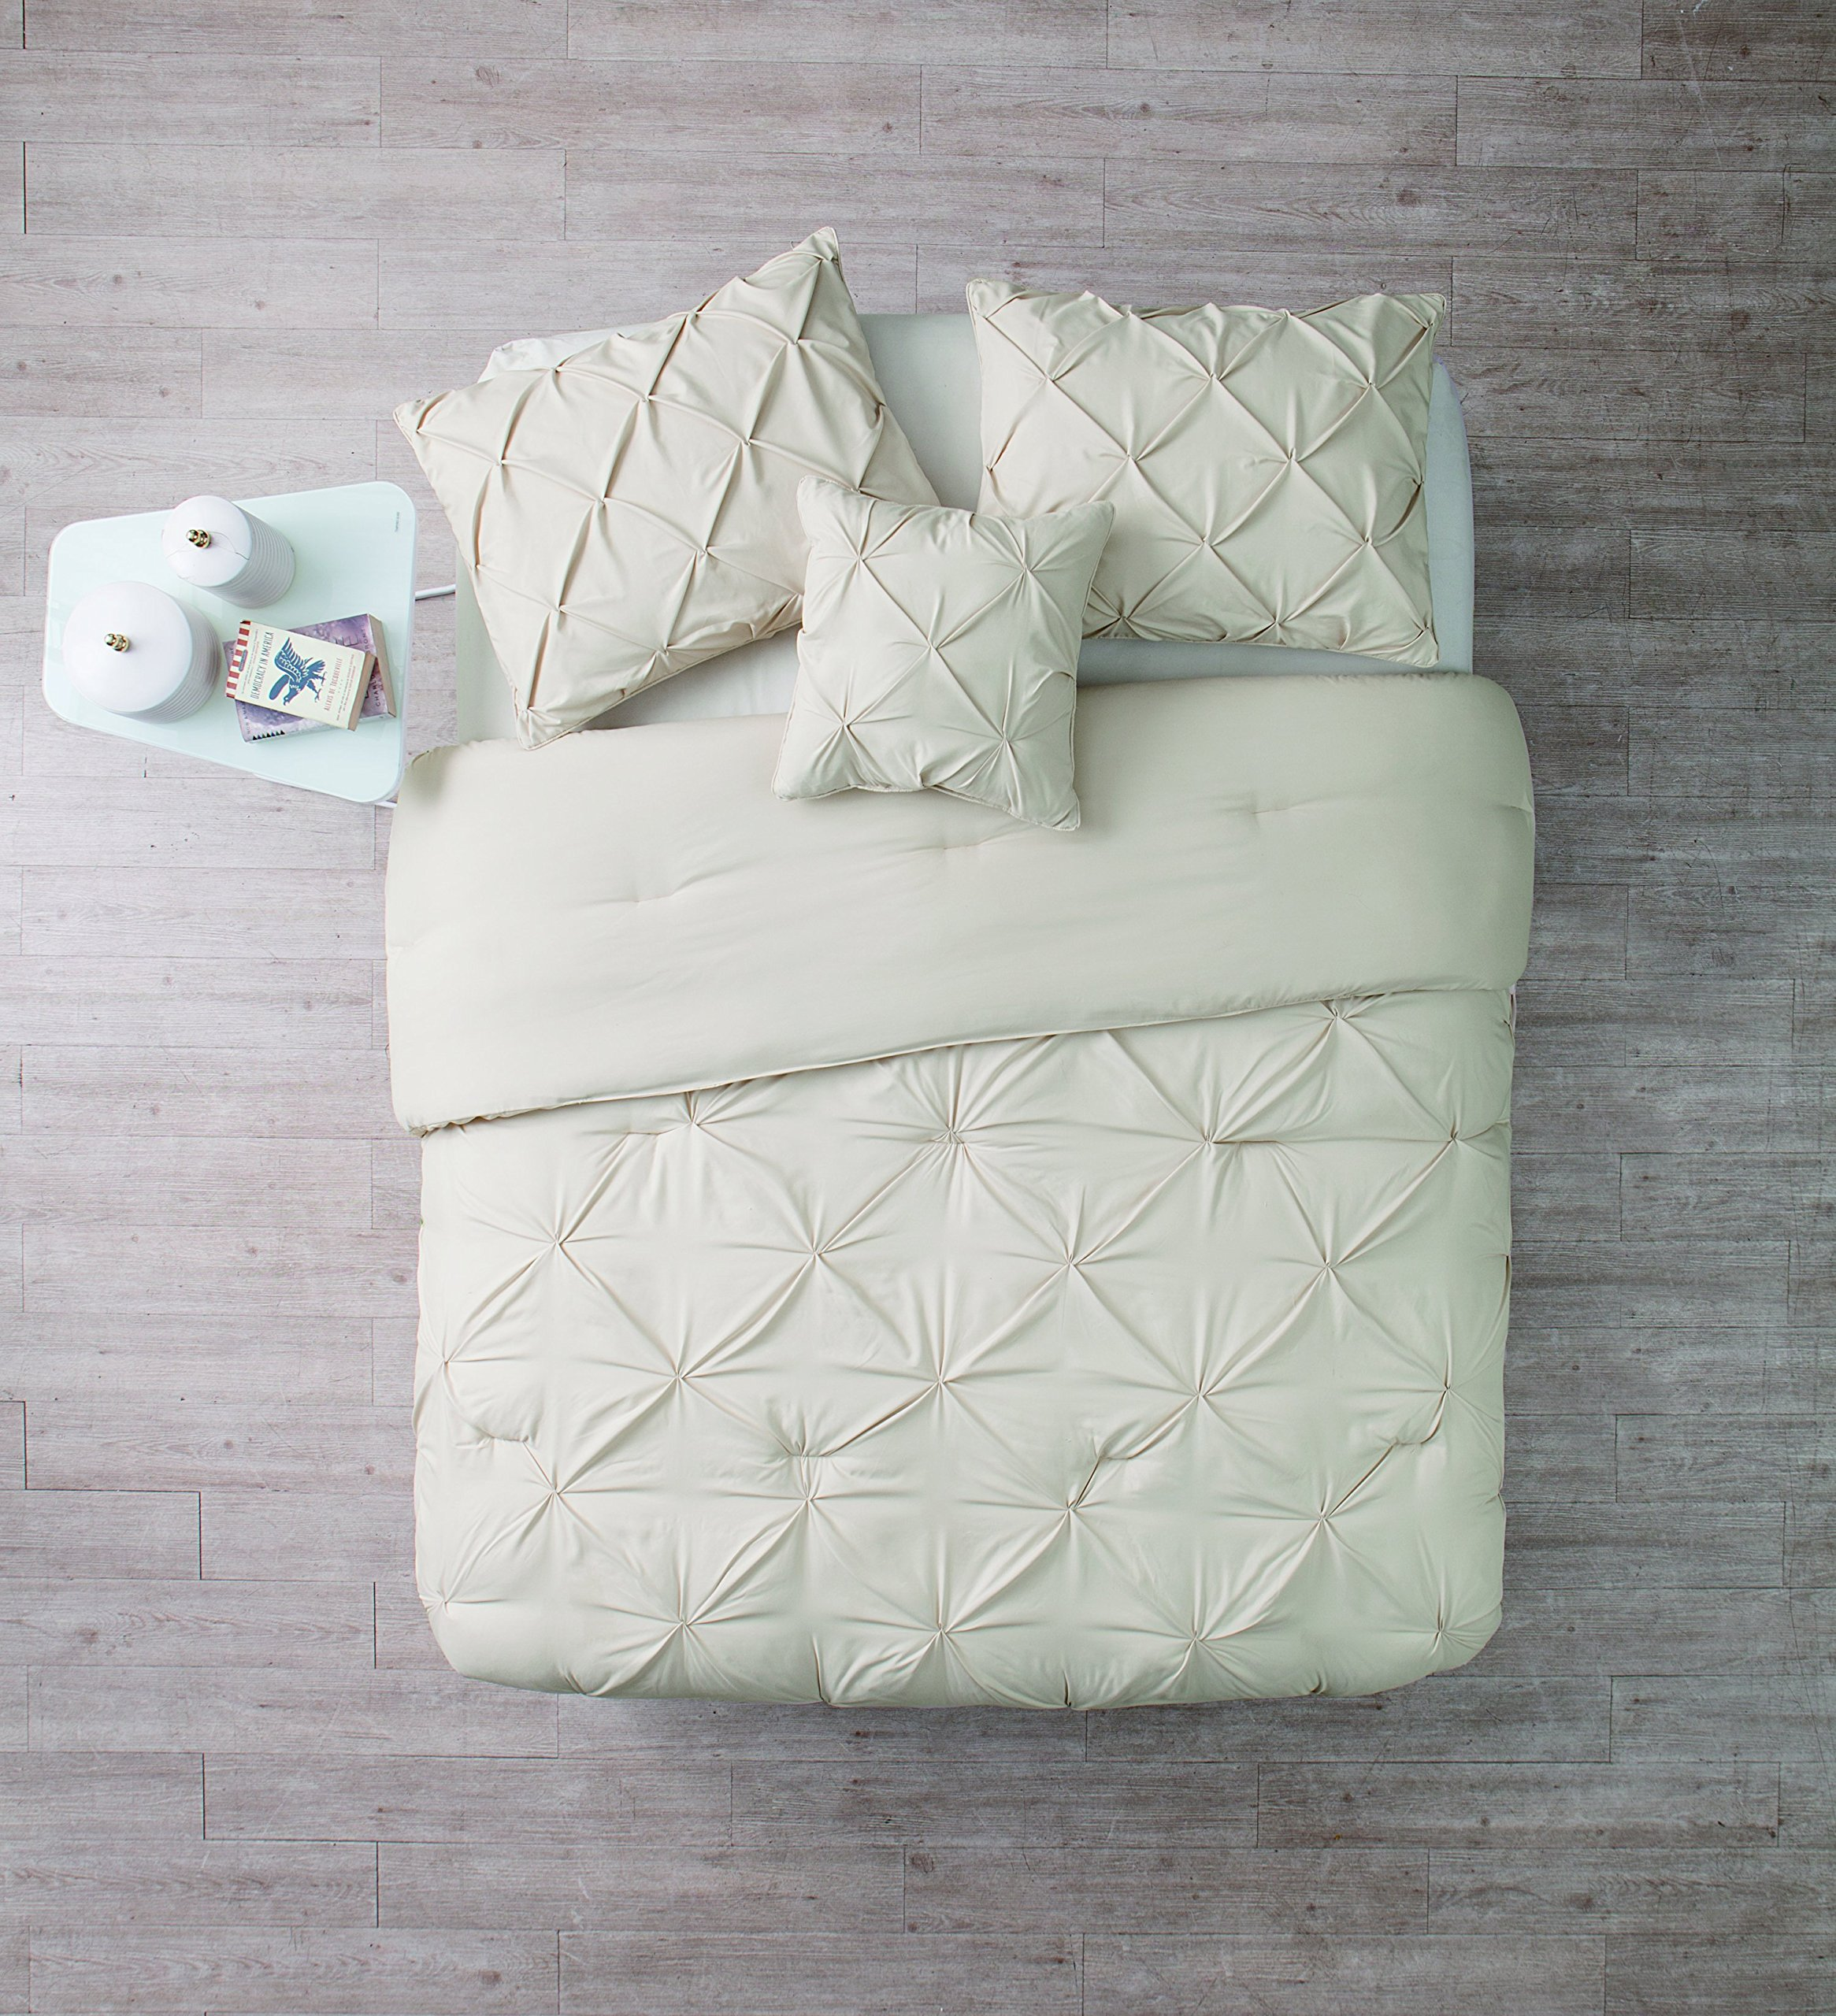 King Size Comforter Set in Taupe / Off White Posh Pintuck 4 Pc Set w/ Decorative Pillows